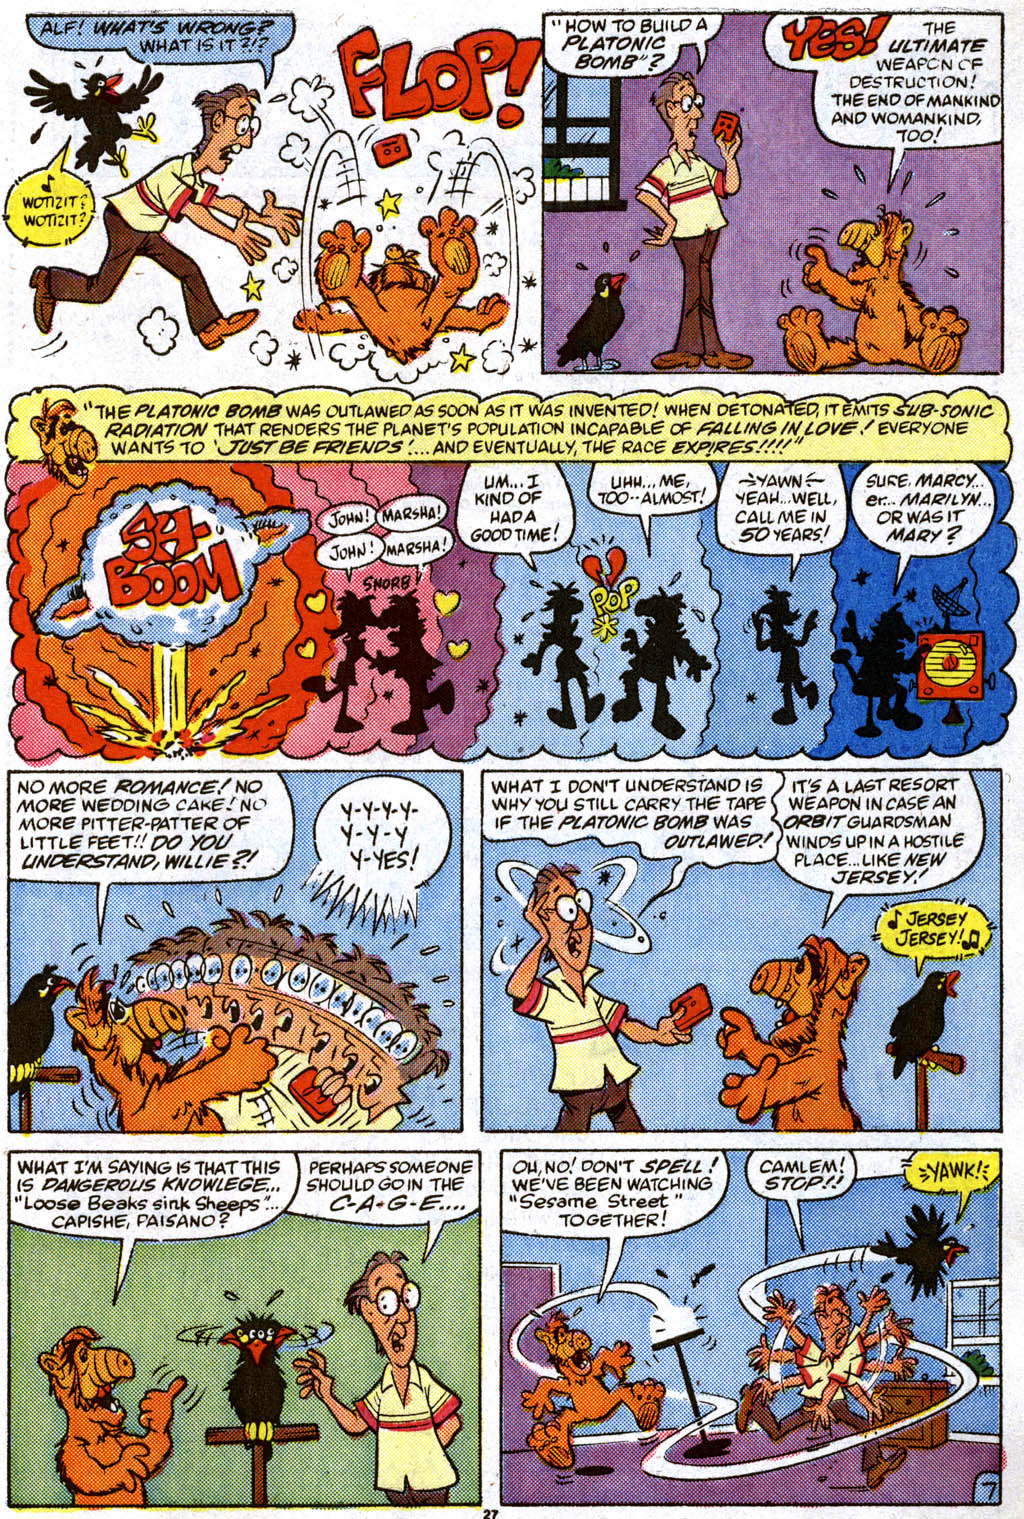 Read online ALF comic -  Issue #11 - 20